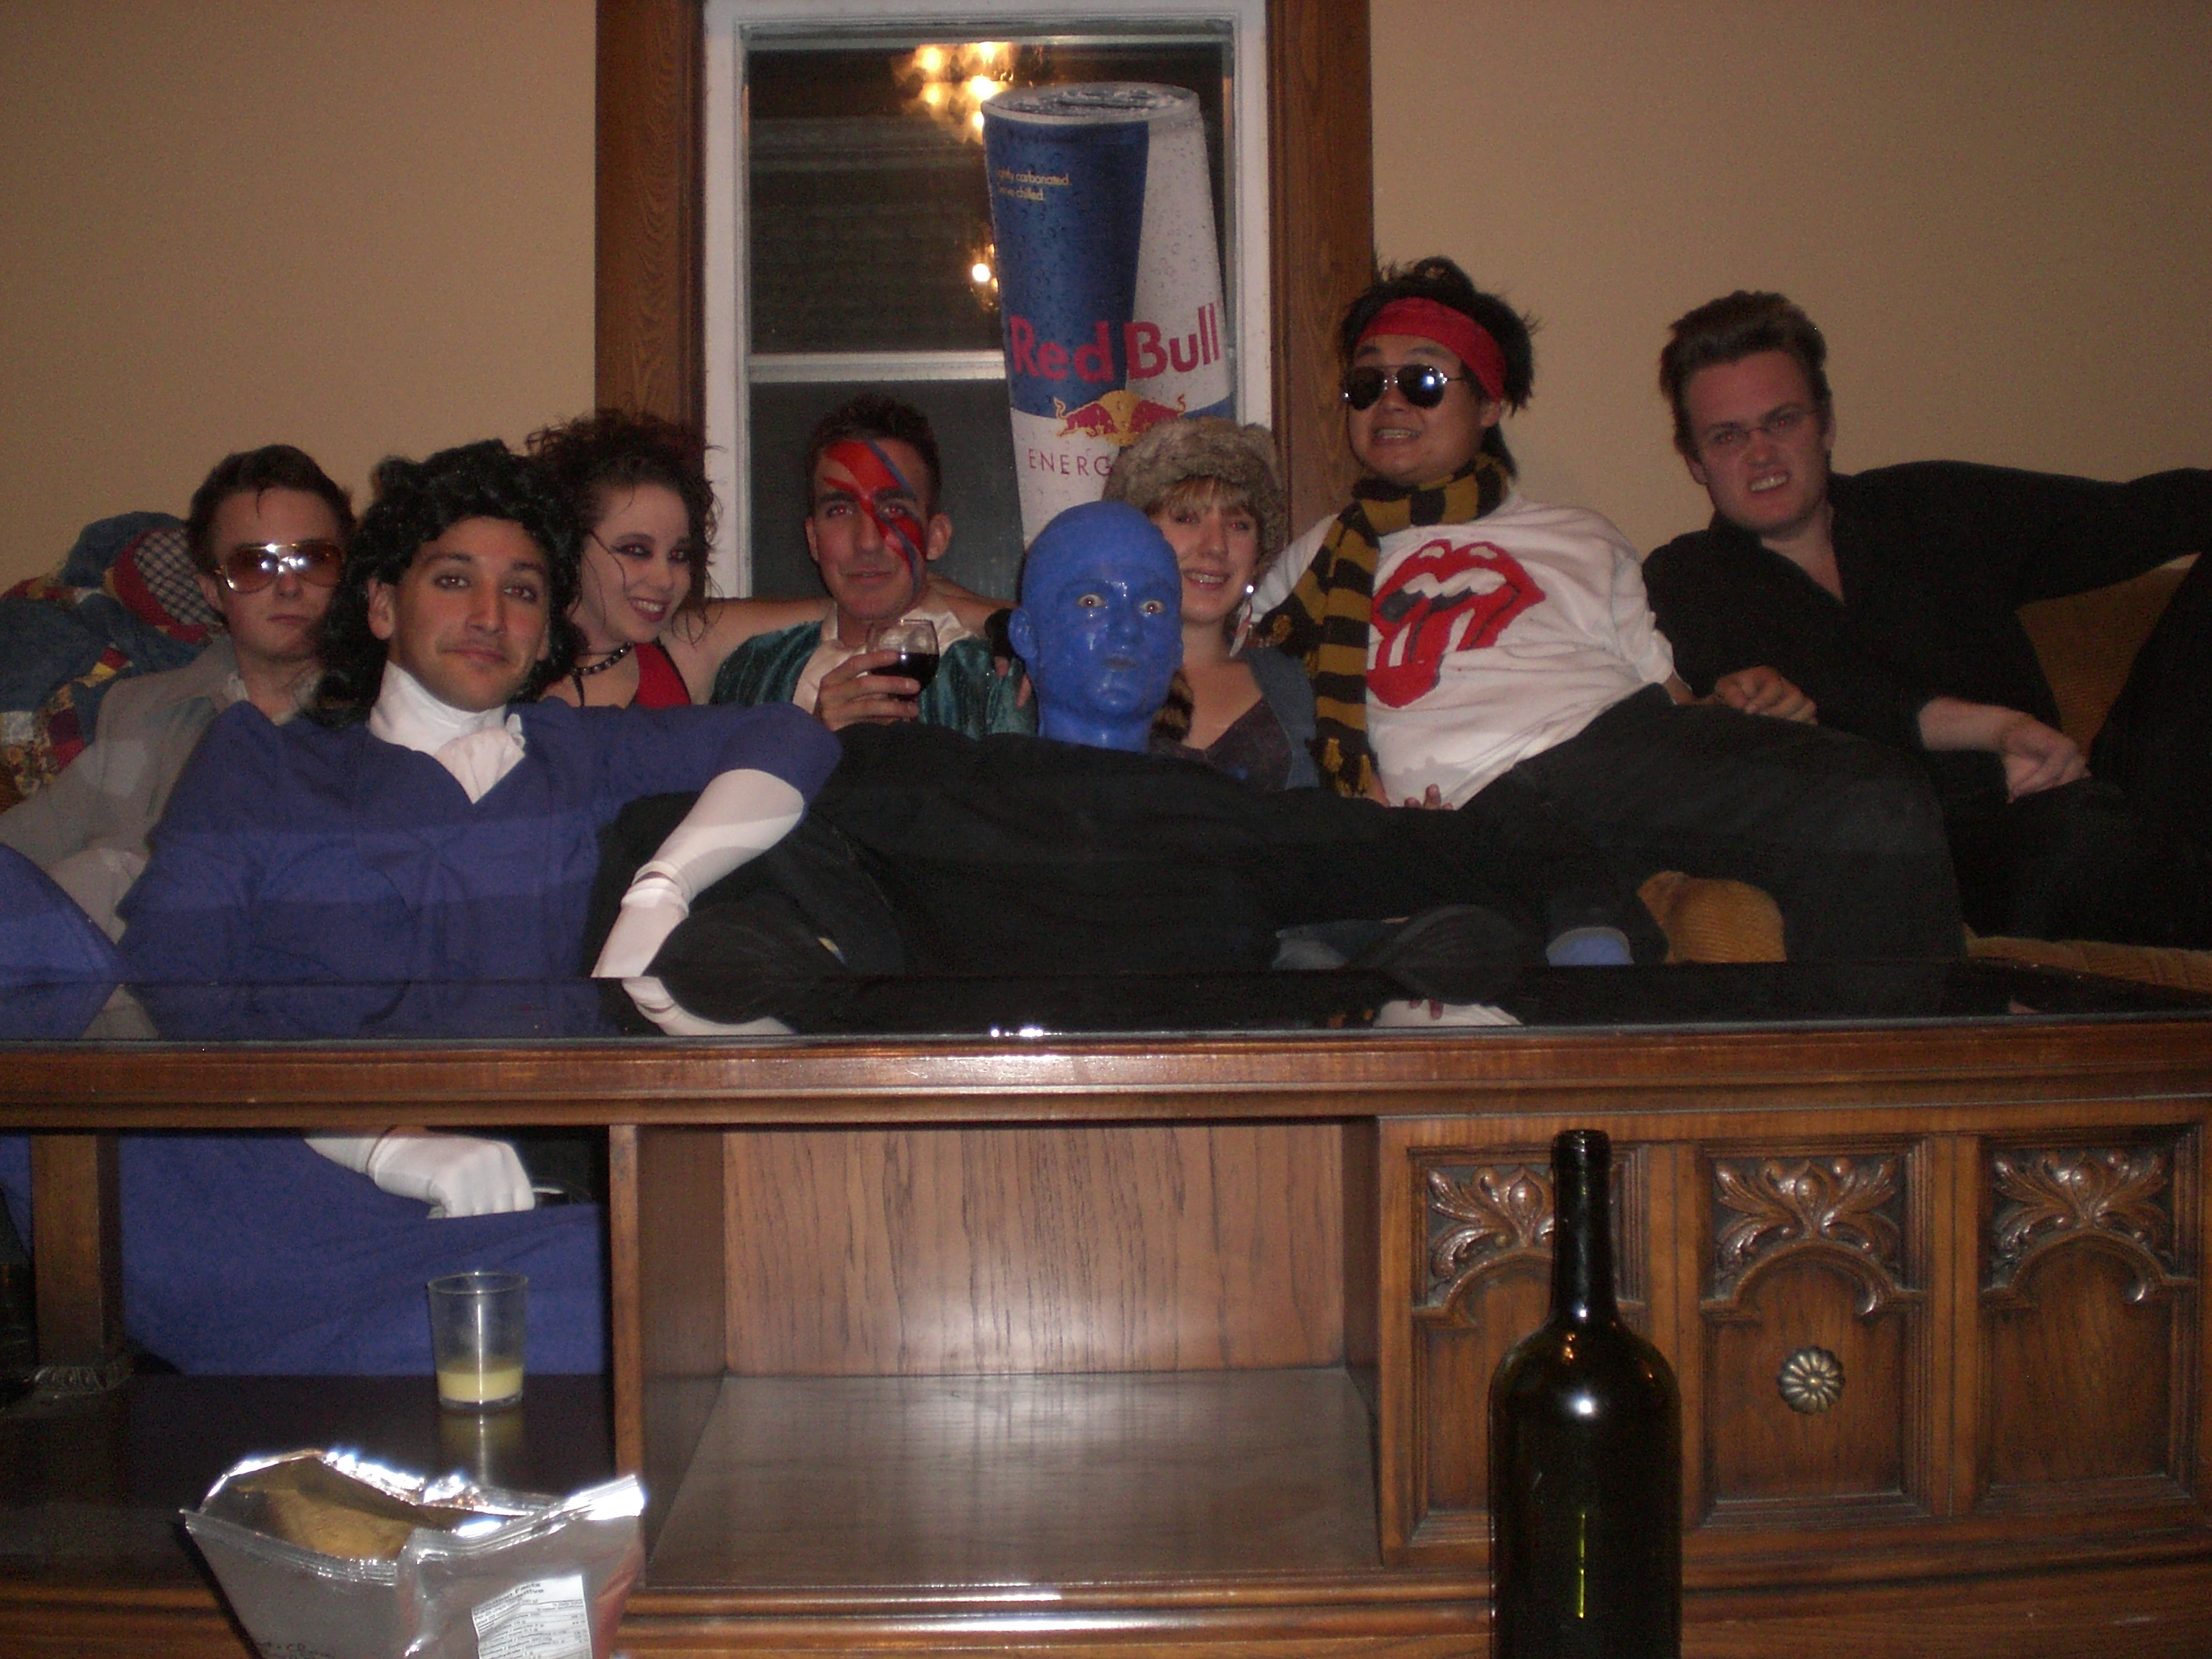 Elvis, Prince, Whoracula, Bowie, Blueman, ??, Keith Richards, and Johnny Cash